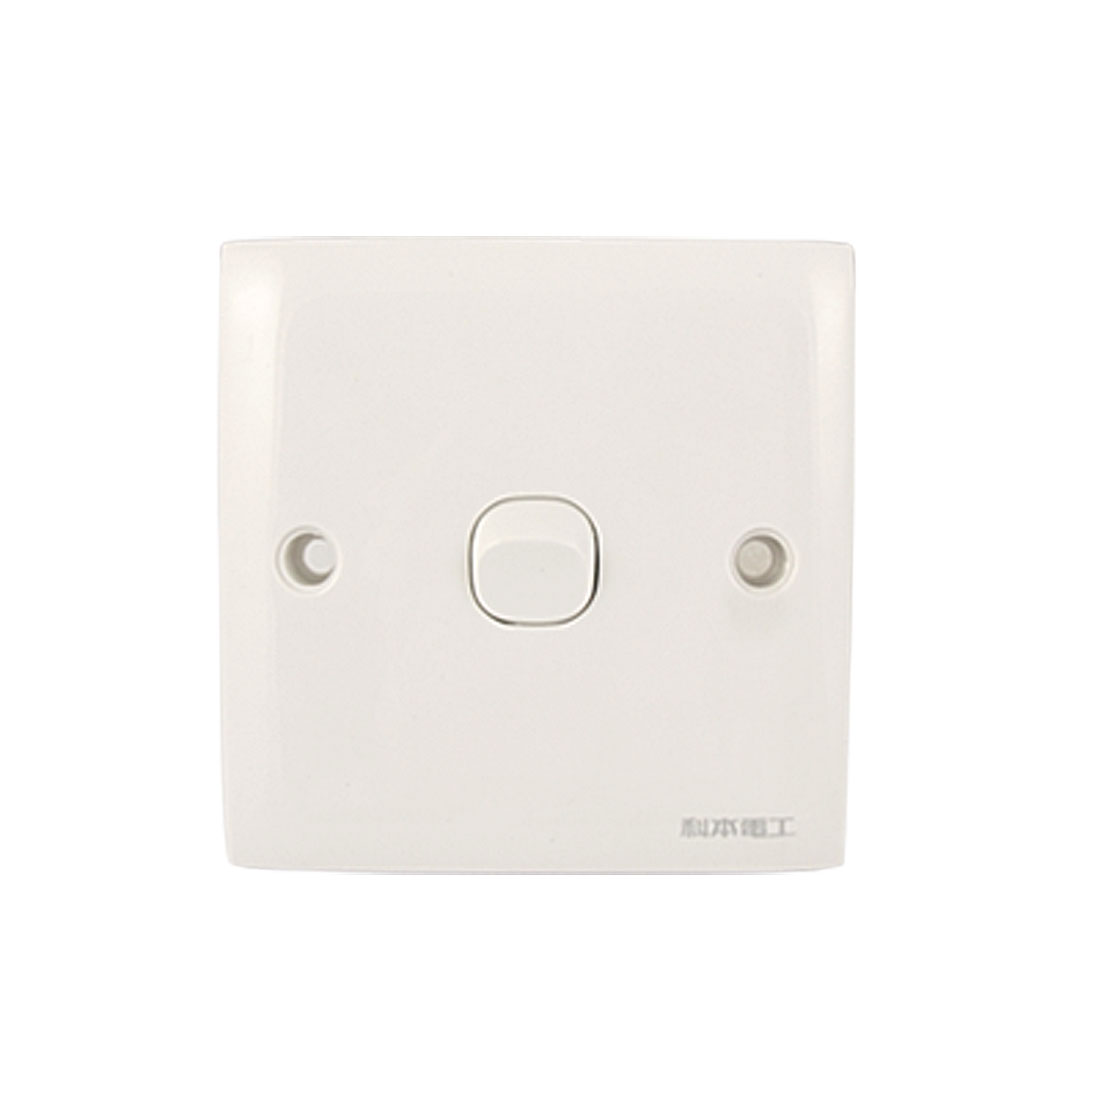 AC 250V 10A SPDT On/On 1 Gang Plate Wall Switch White